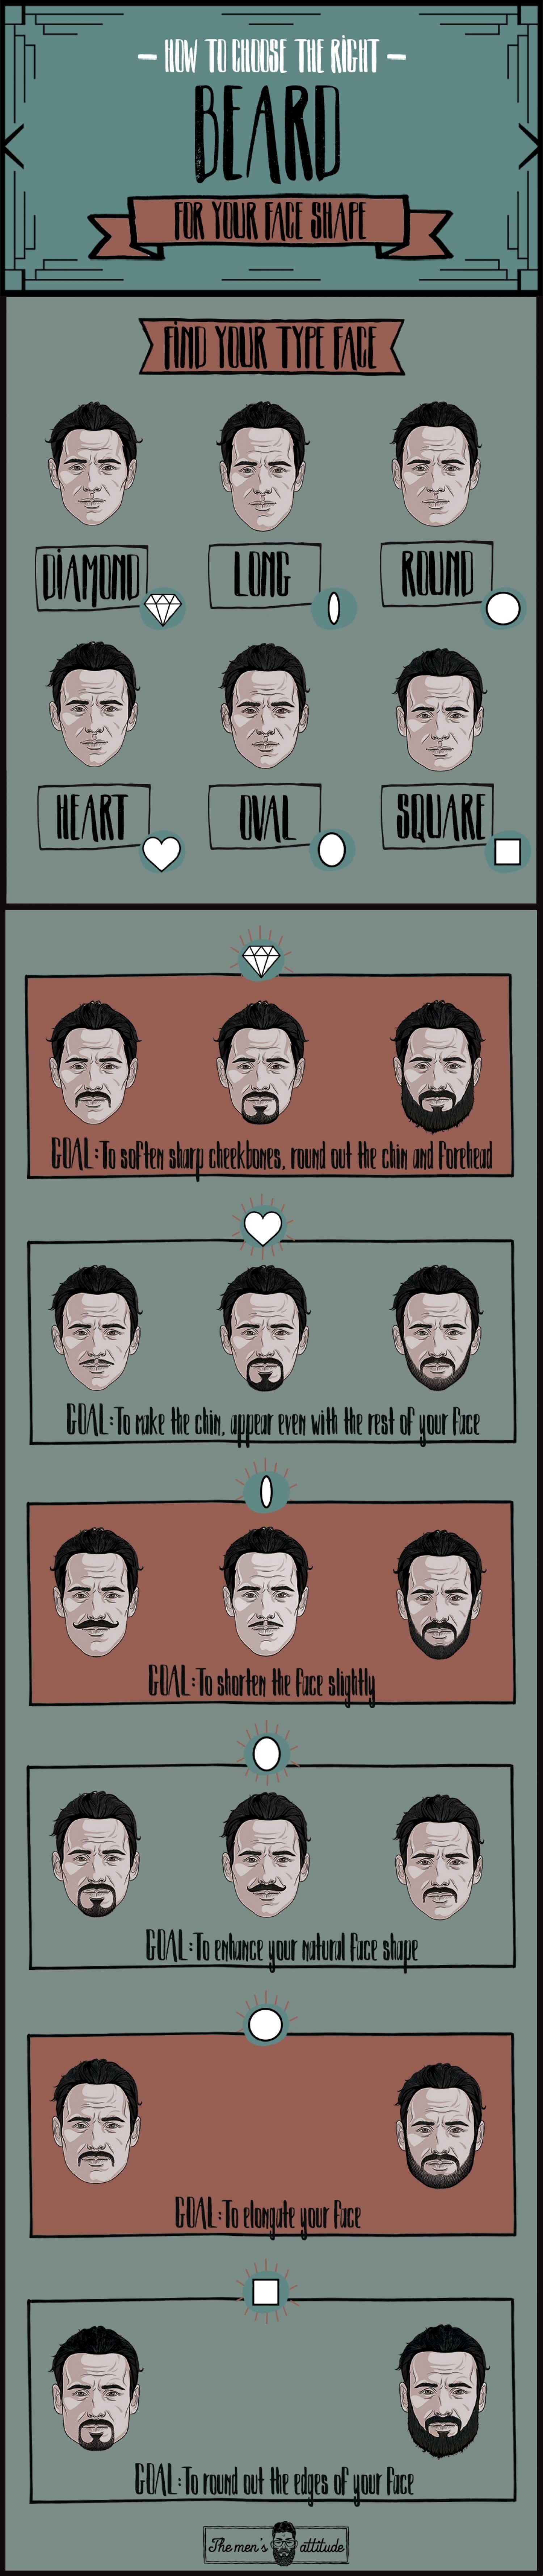 Find the Best Beard Style for Your Face Shape Infographic